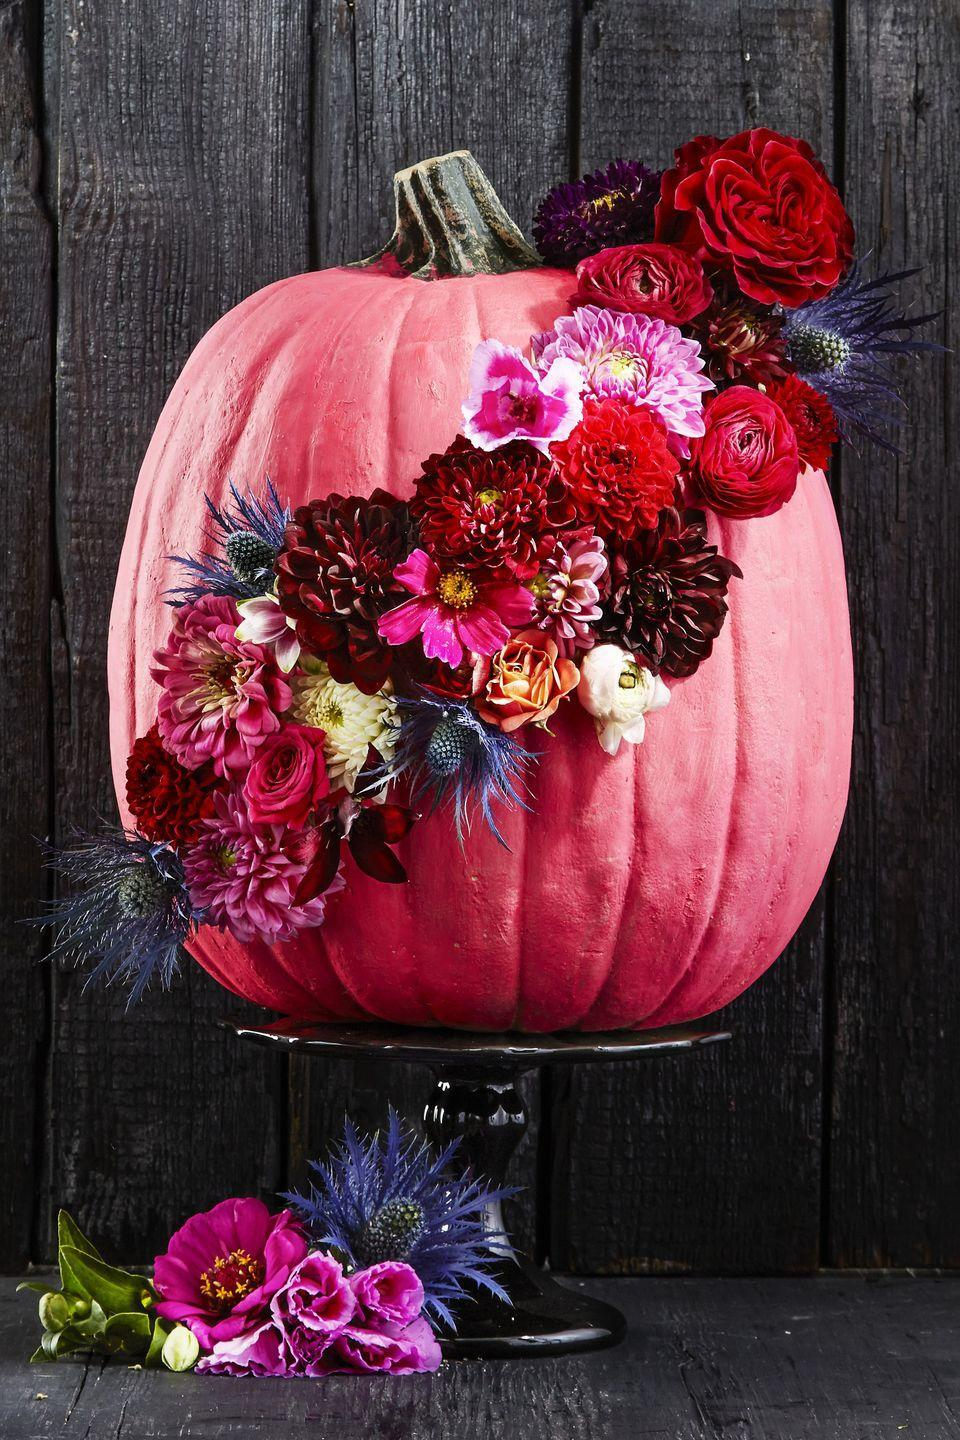 "<p>This hot pink gourd earns centerpiece status thanks to a sash of fresh blooms. Snip stems about one to two inches from buds, drill small holes in the painted rind, then stick in the buds. Keep flowers looking perky by periodically spritzing with water. </p><p><a class=""link rapid-noclick-resp"" href=""https://www.amazon.com/dp/B001K6191C?tag=syn-yahoo-20&ascsubtag=%5Bartid%7C10055.g.1566%5Bsrc%7Cyahoo-us"" rel=""nofollow noopener"" target=""_blank"" data-ylk=""slk:SHOP PINK PAINT"">SHOP PINK PAINT</a></p>"